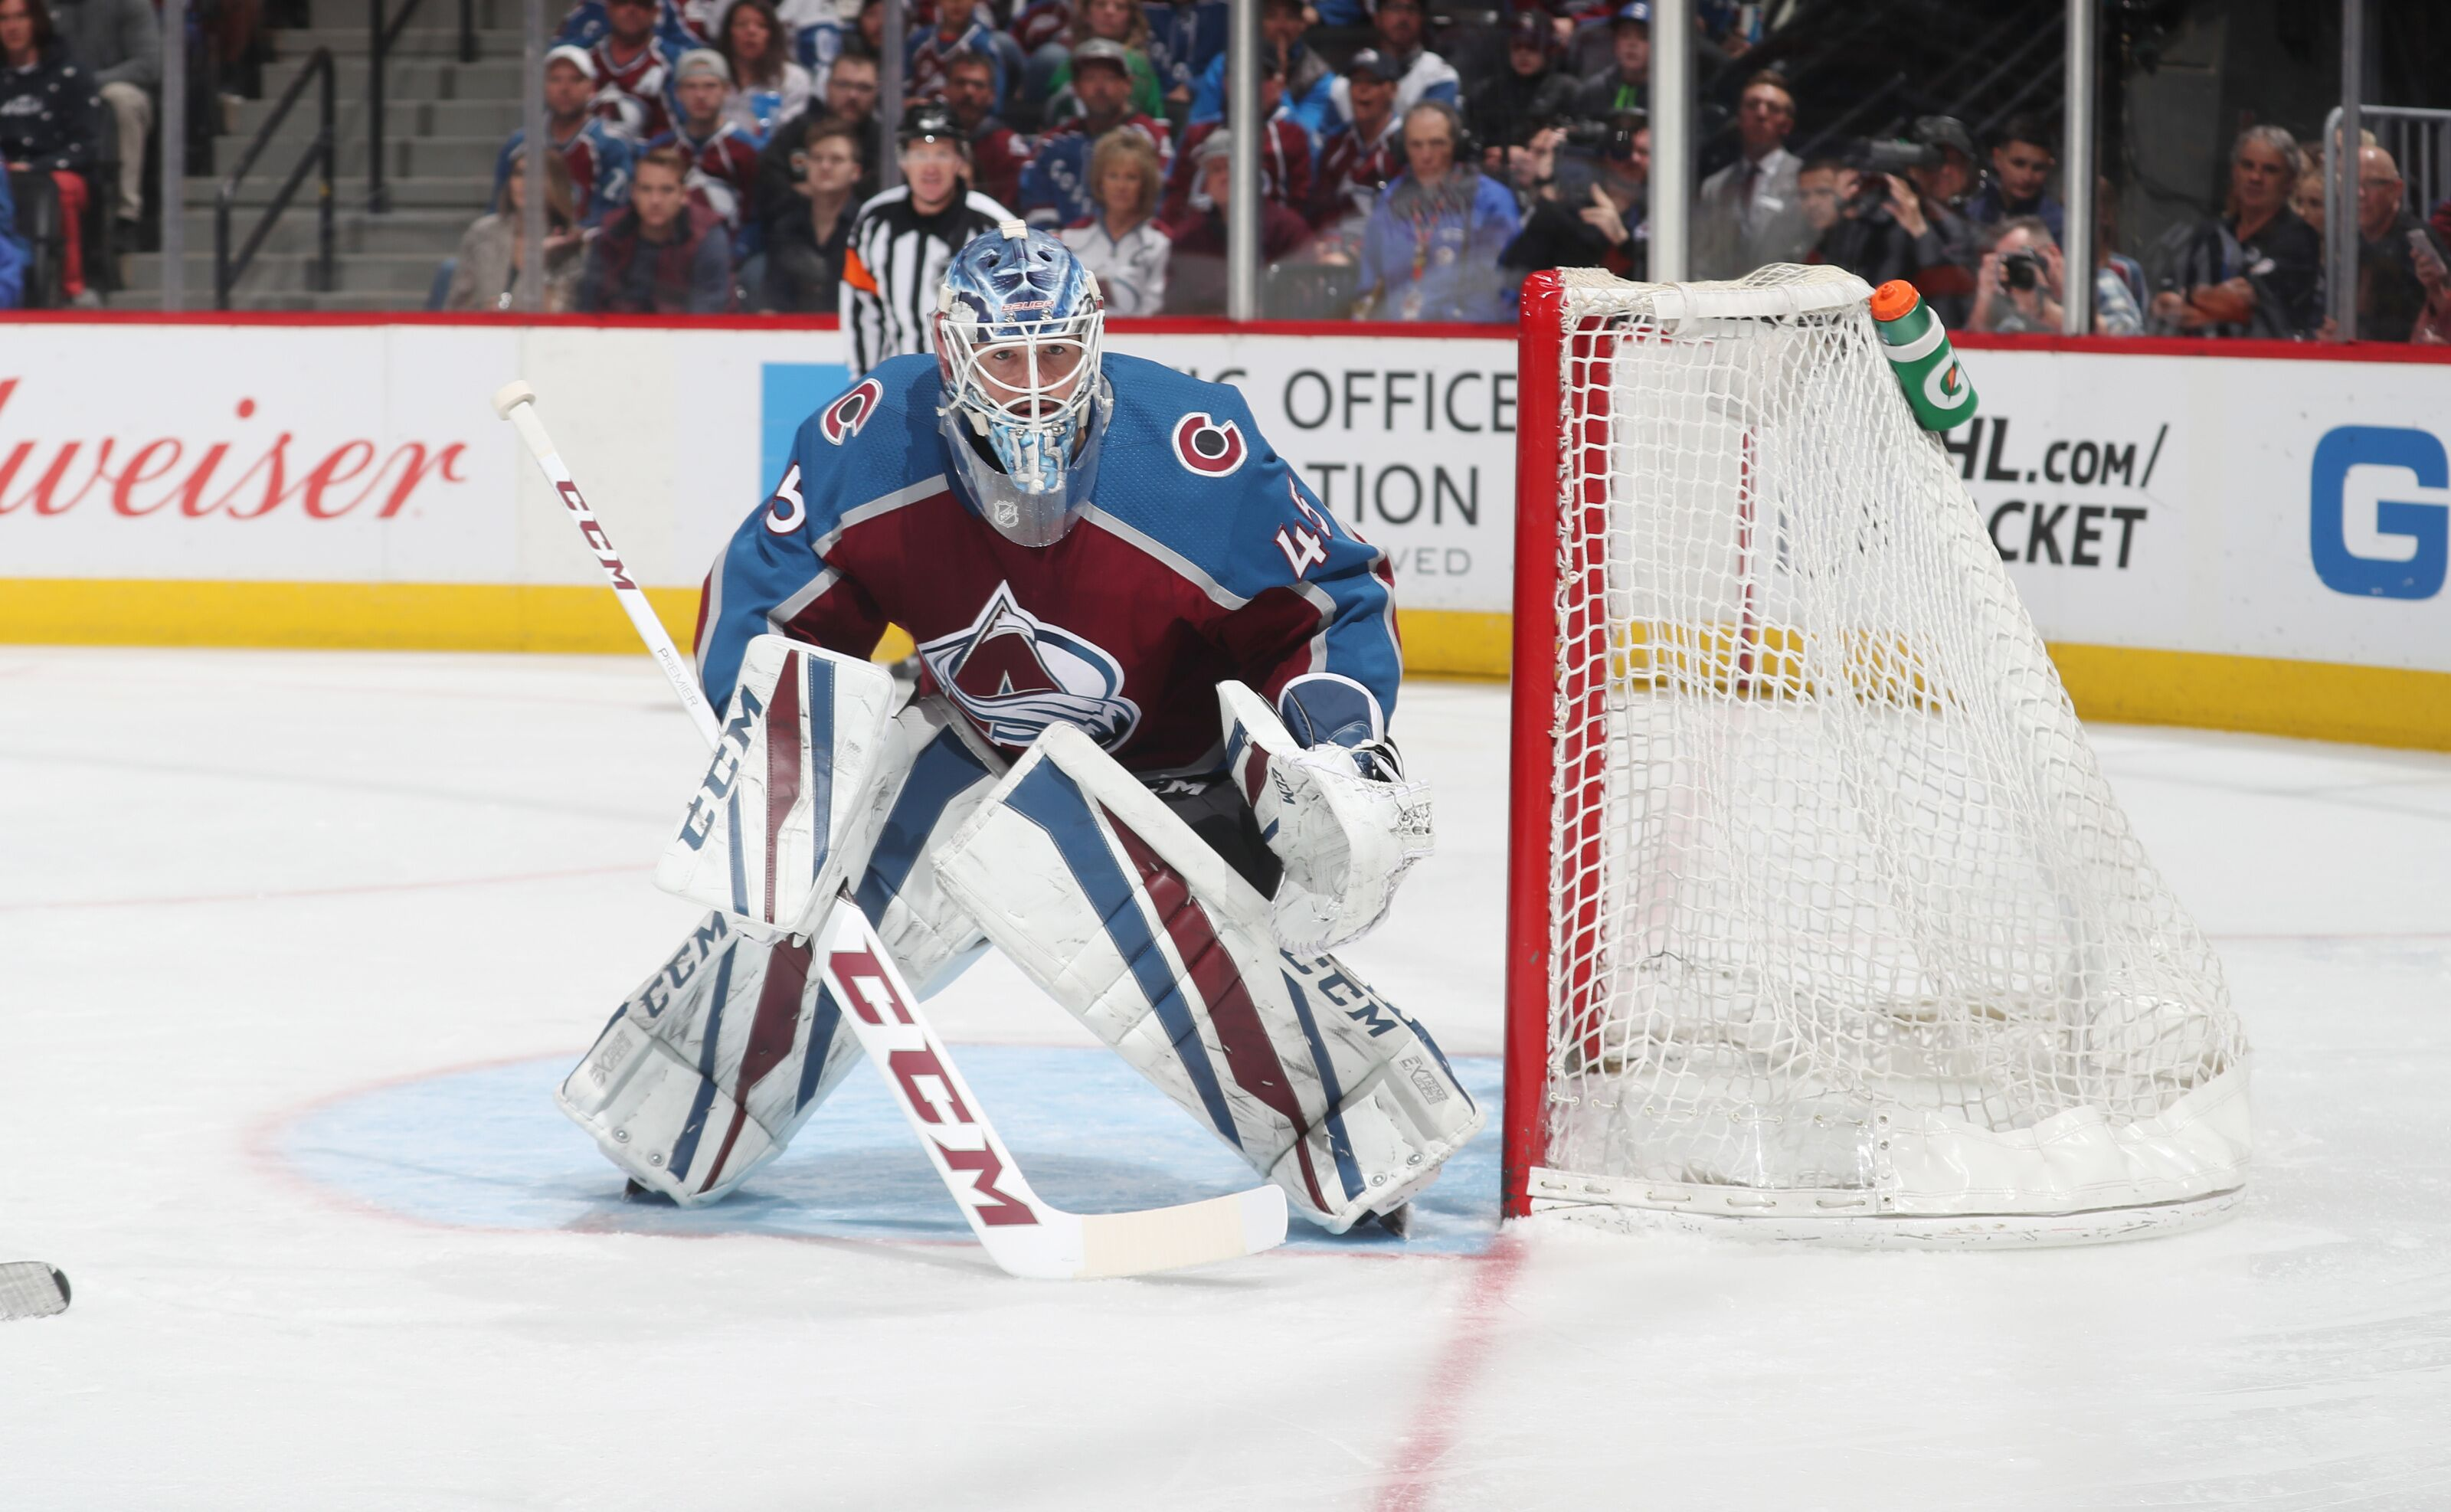 943910218-st-louis-blues-v-colorado-avalanche.jpg